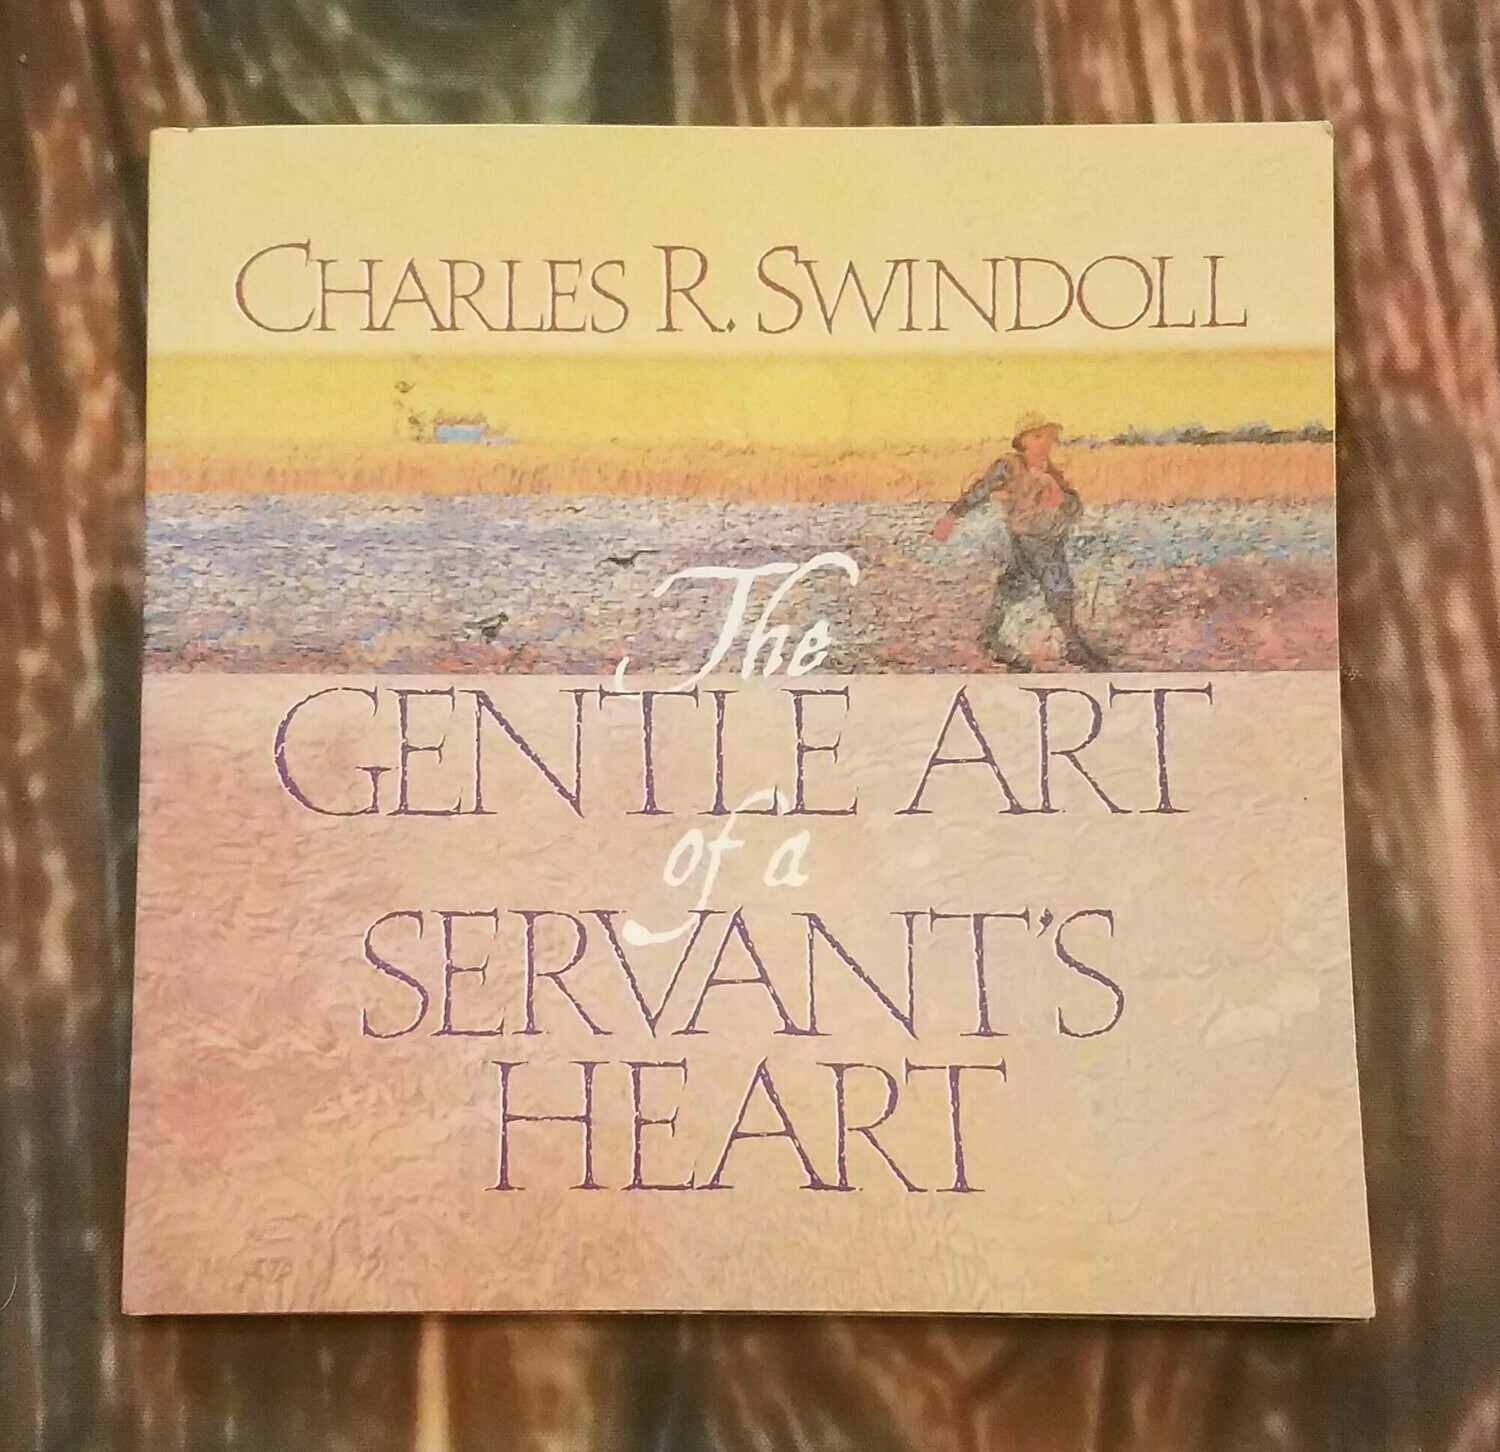 The Gentle Art of a Servant's Heart by Charles R. Swindoll